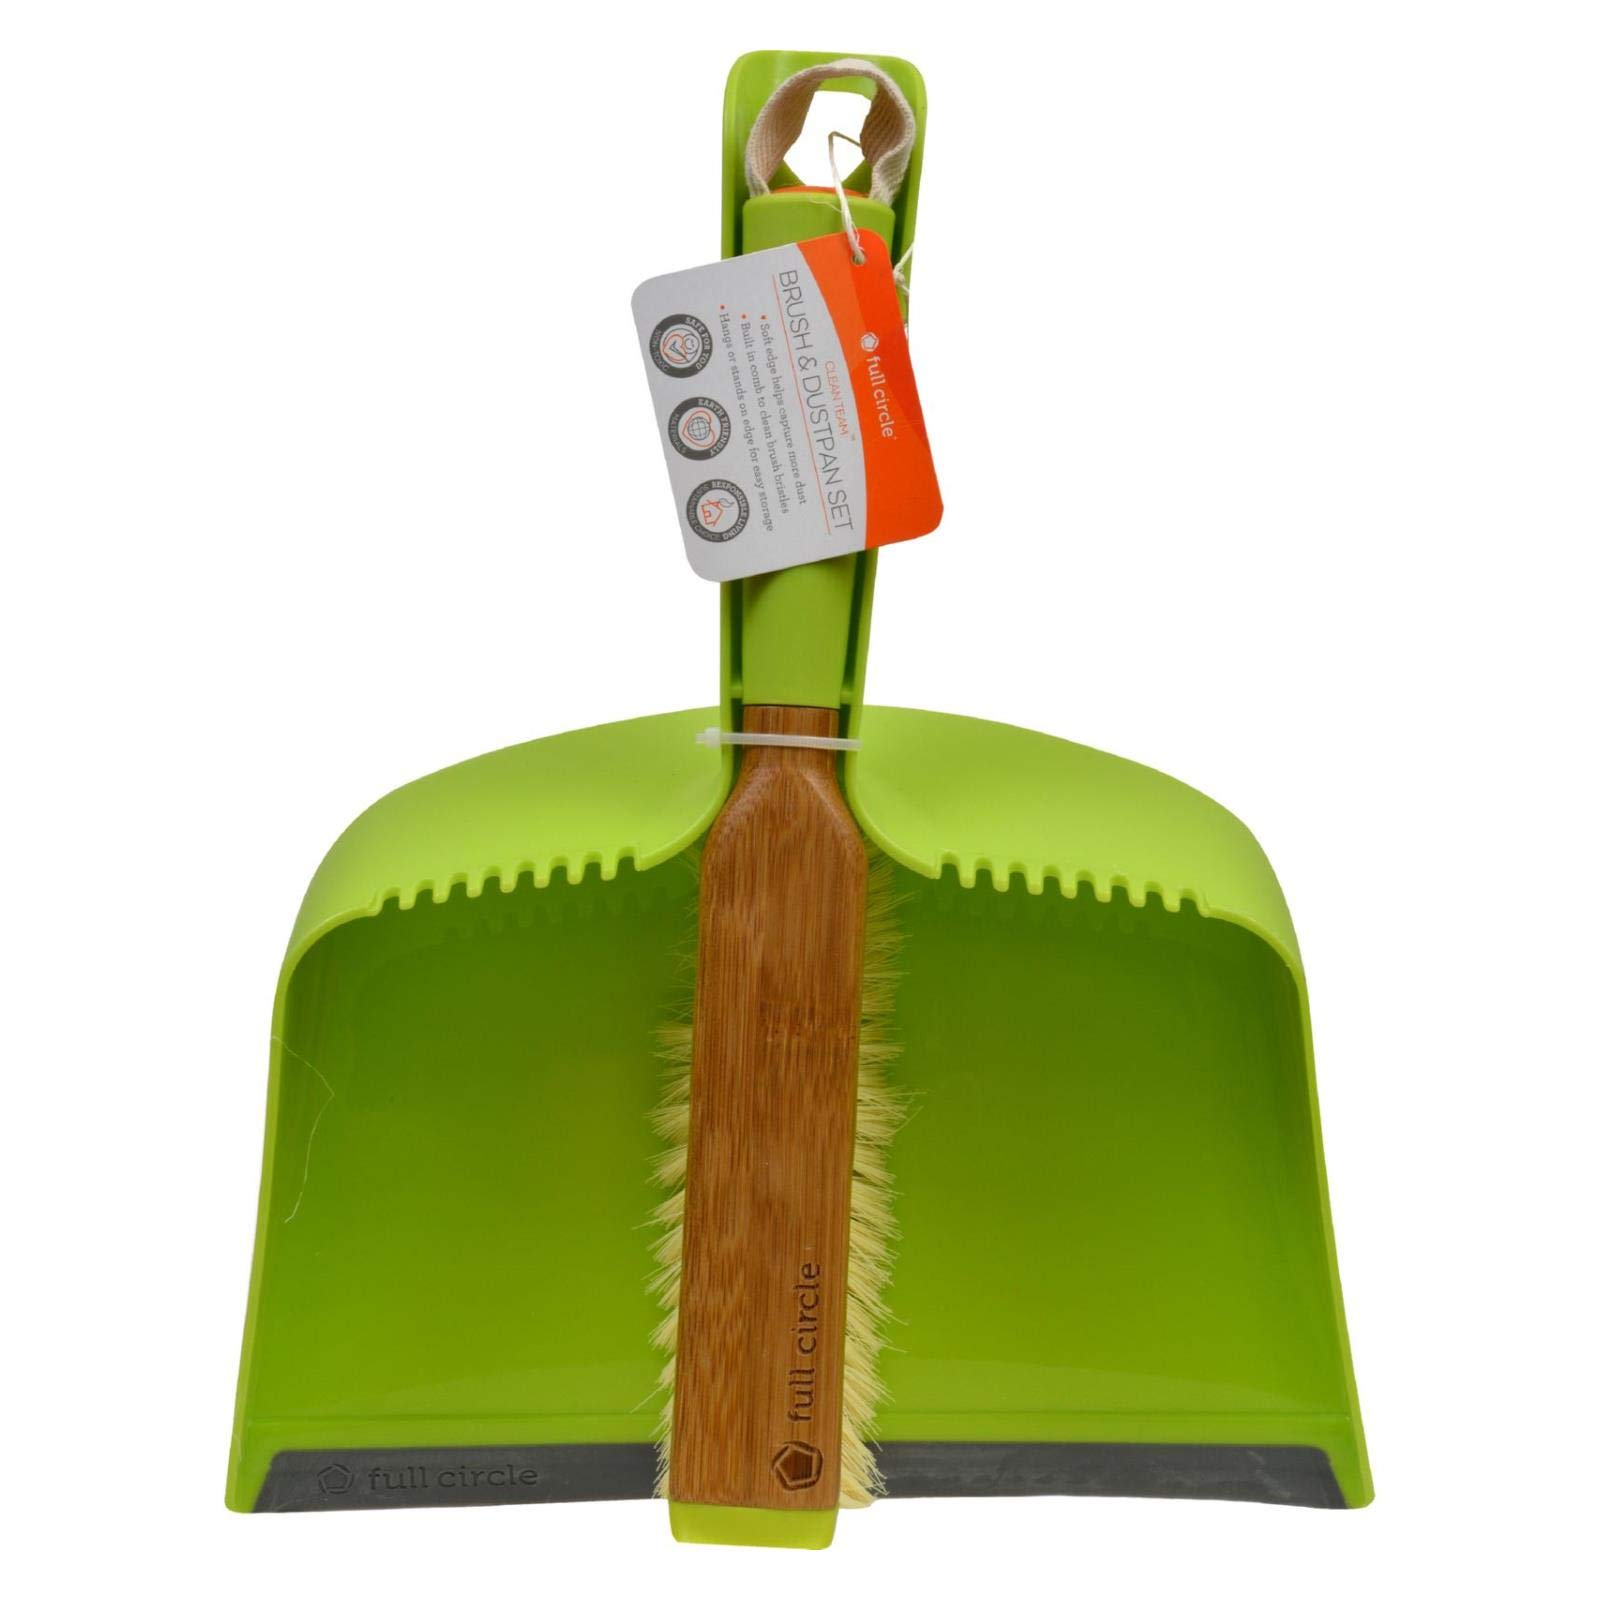 2 Pack of Full Circle Clean Team brush and dustpan set by Full Circle Home (Image #1)